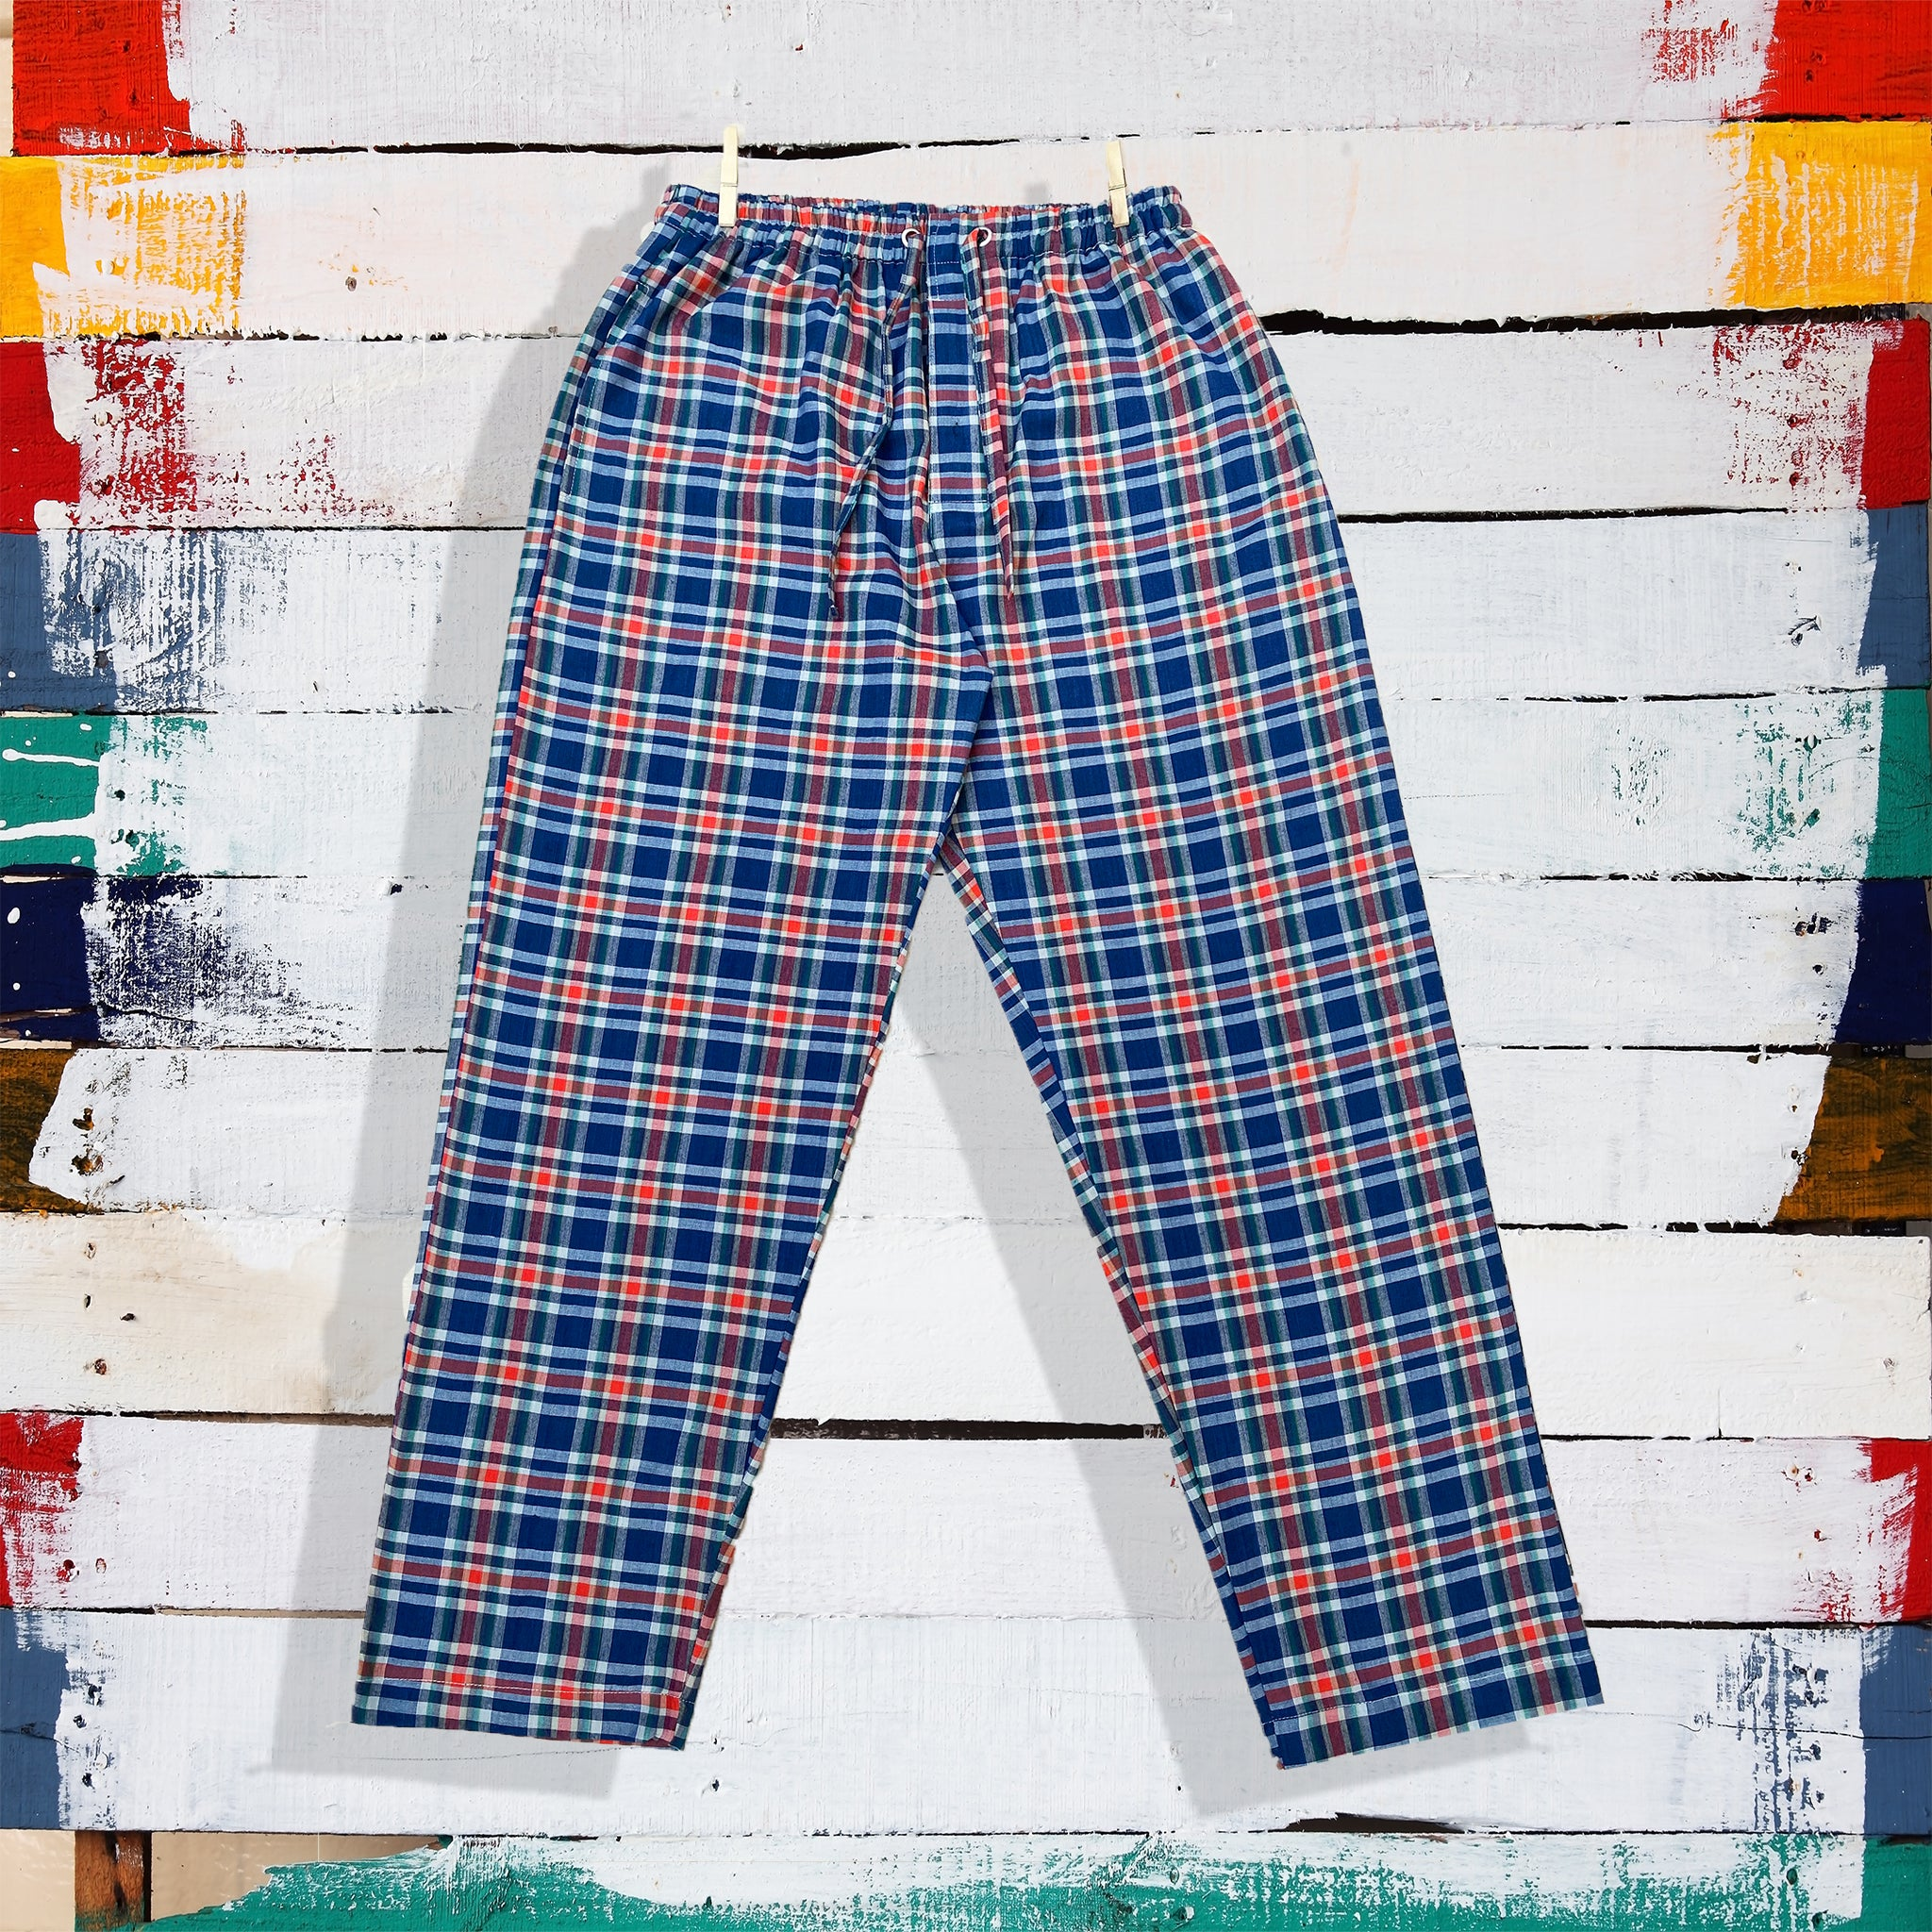 men's-cotton-pajamas-in-check-print-online-india